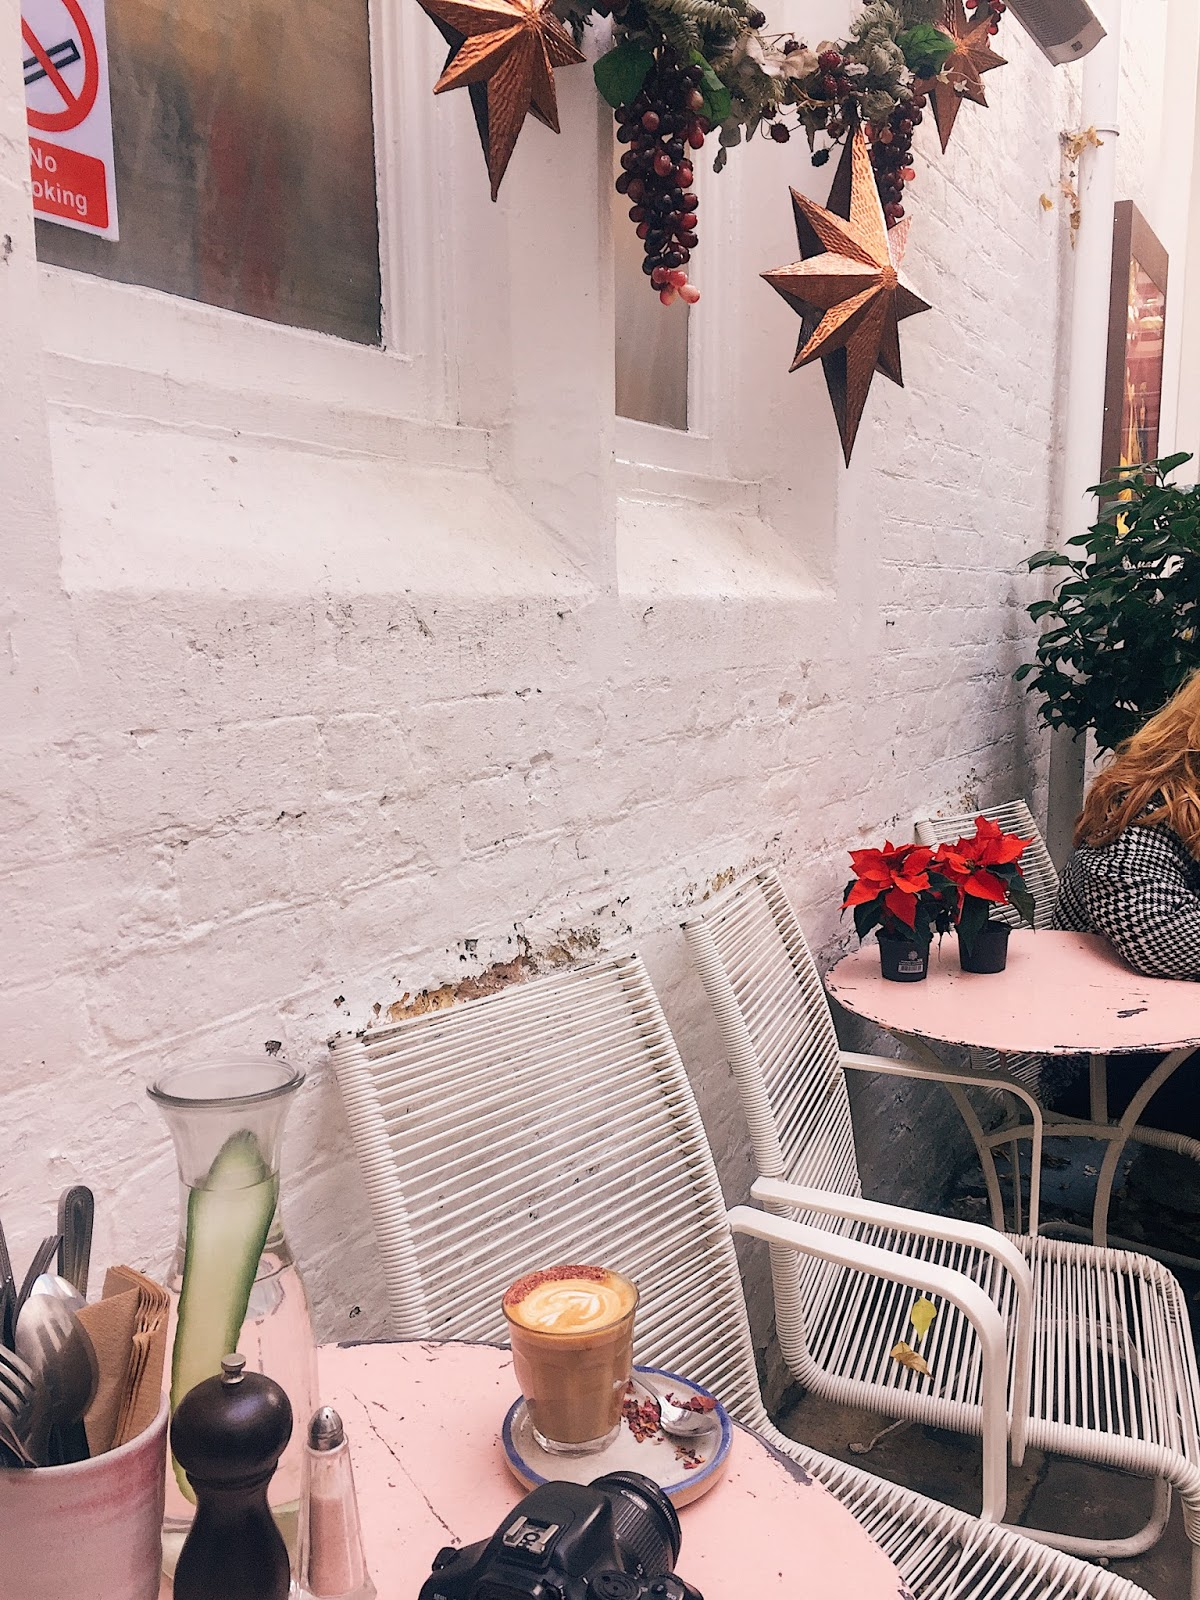 a girls instagram guide to london, instagram spots in london, instagram worthy places london, farm girl cafe, farm girl cafe london, portobello road, acai bowl, rose latte, pink table london